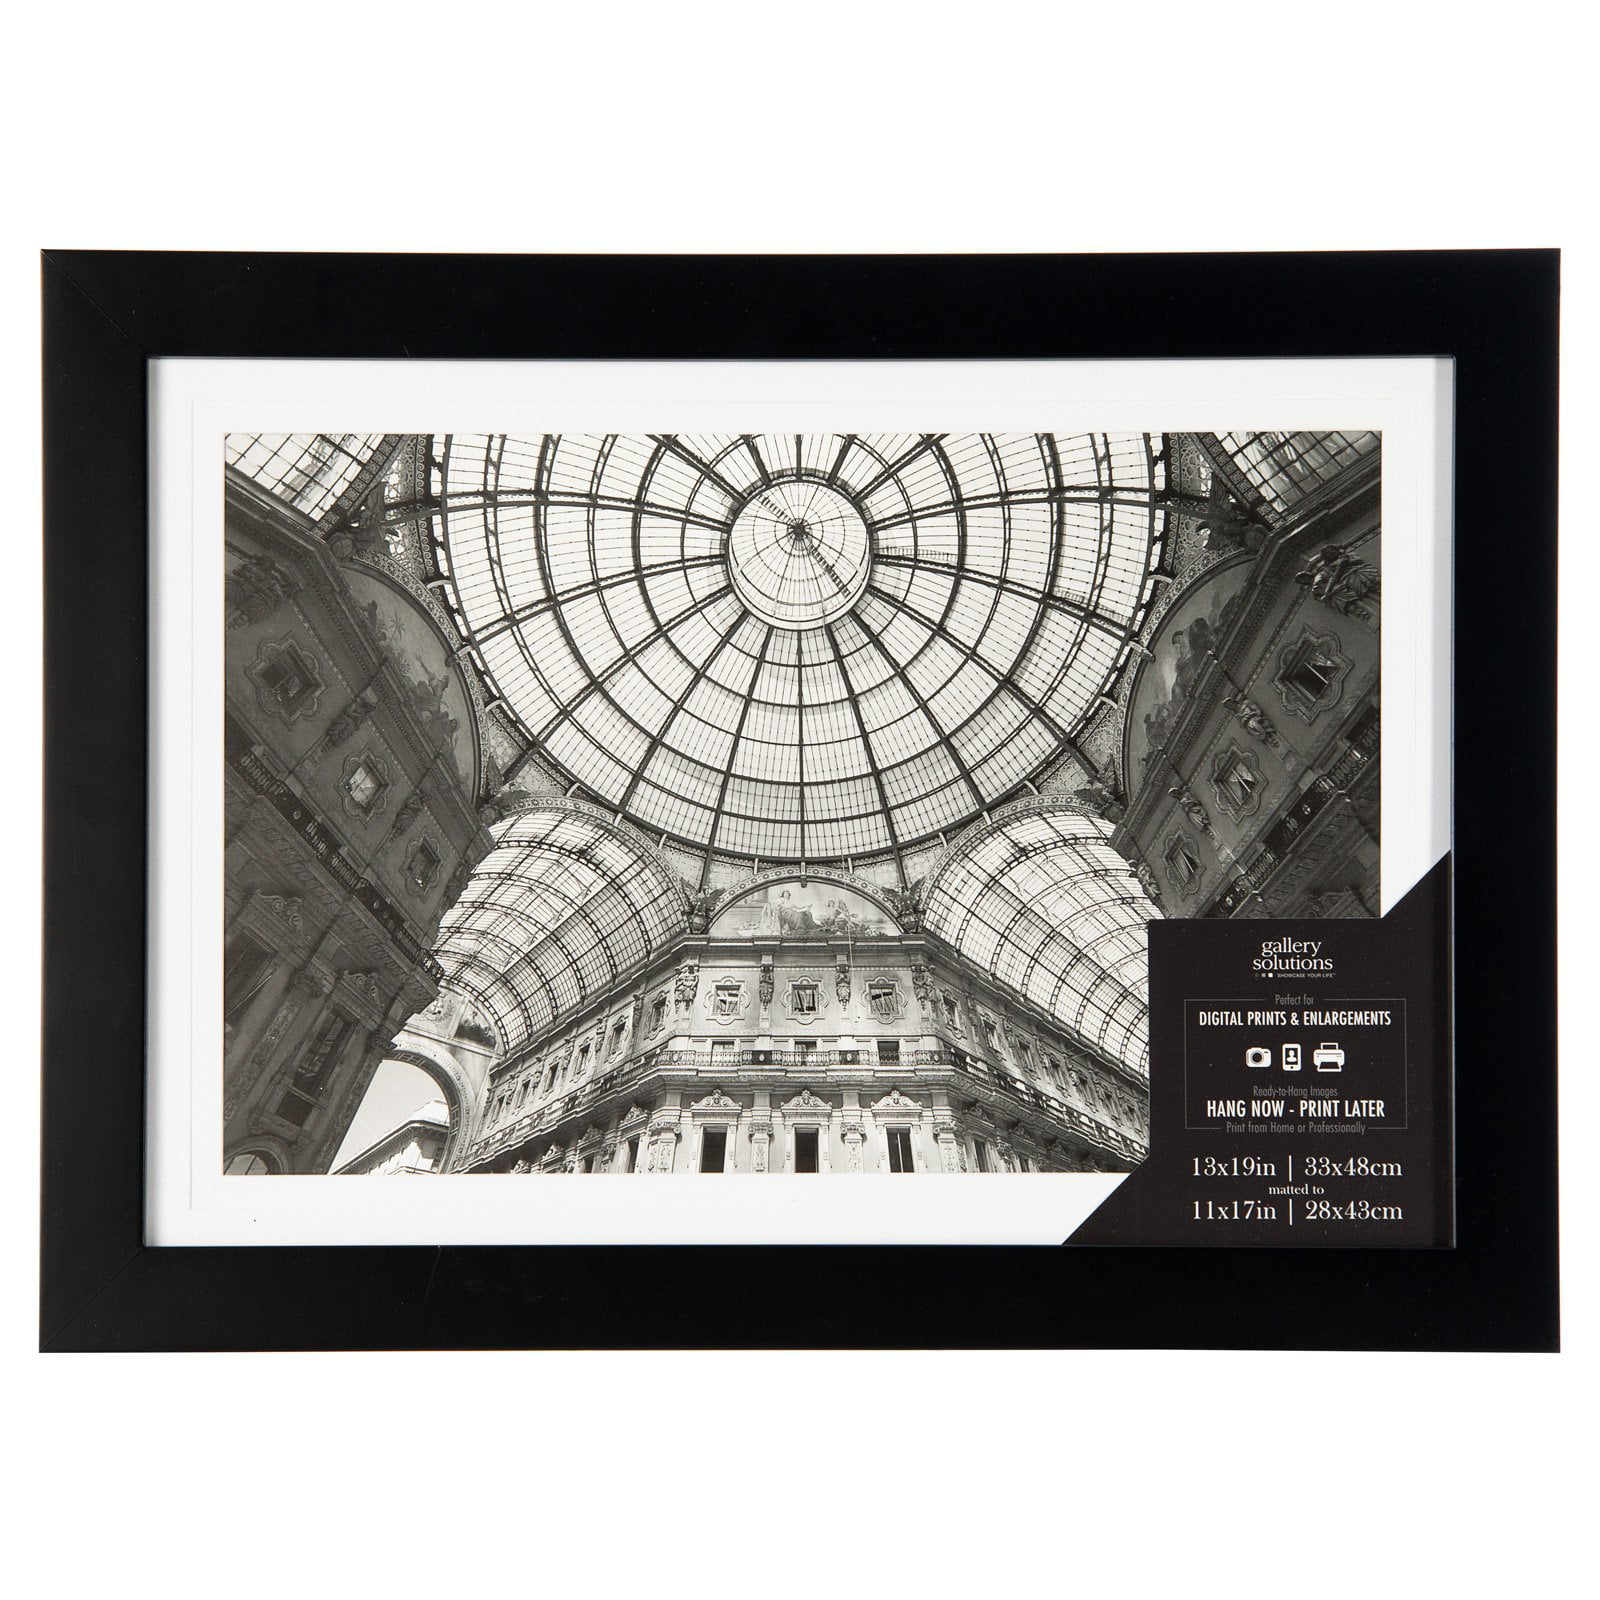 13x19 Wide Flat Black Frame With Mat For 11x17 Image Walmartcom